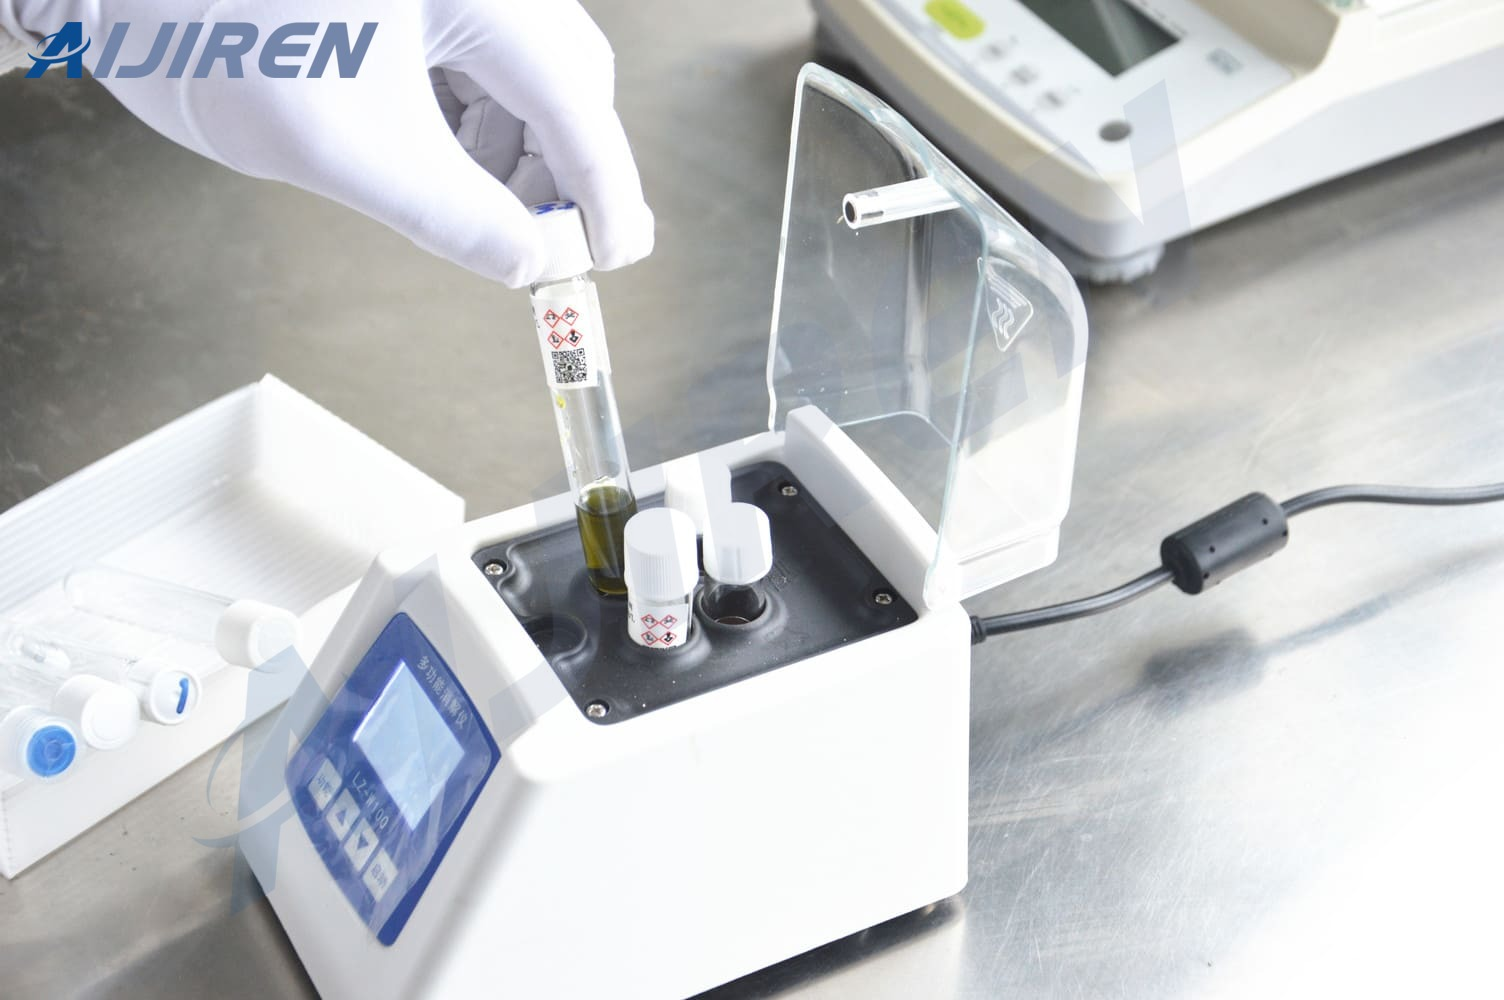 20ml headspace vialAijiren's COD Test Tubes are Used in Multifunctional Digestion Instrument